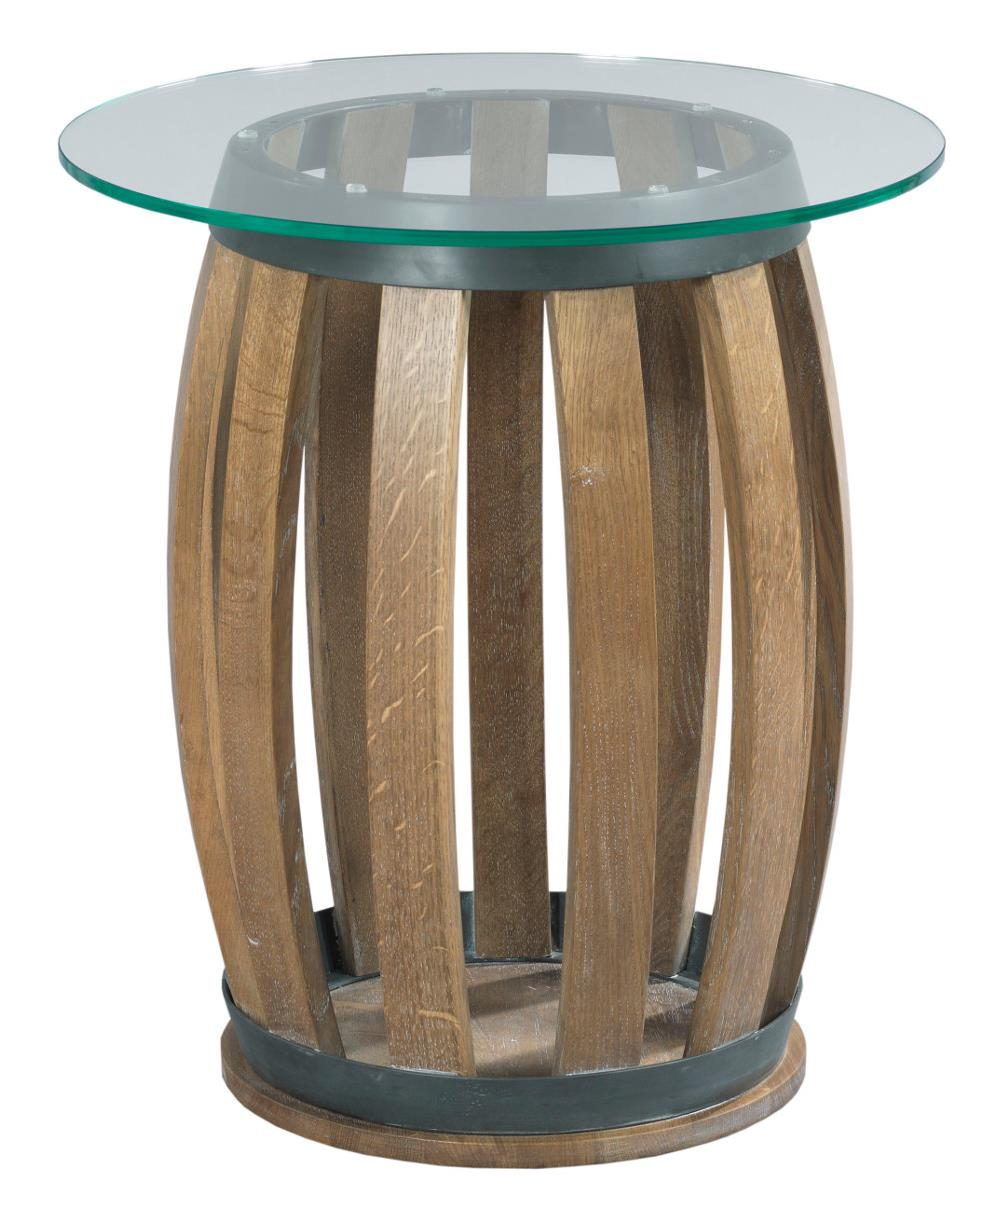 rustic wine barrel accent table with tempered glass top kincaid products furniture color stone ridge ceramic outdoor wolf and gardiner dale tiffany hummingbird lamp low mirrored